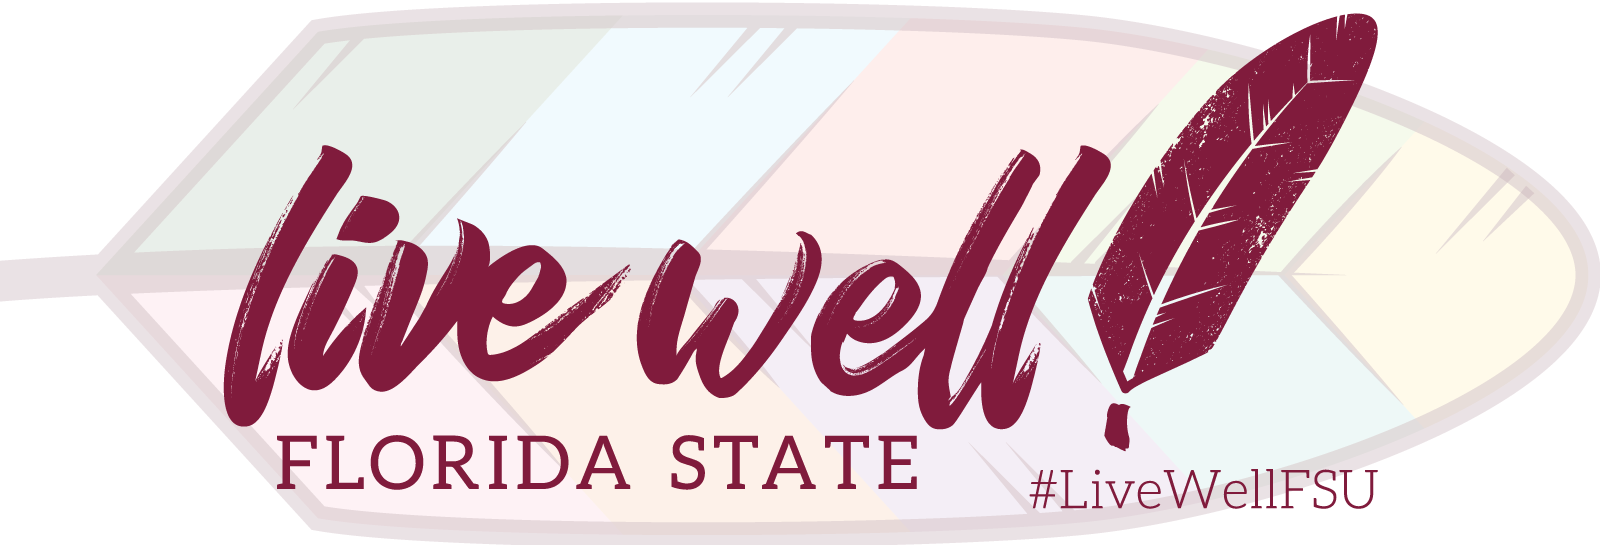 We believe an environment that encourages healthy behaviors and wellness is essential to the academic success and holistic well-being of members of the FSU community.  #LiveWellFSU